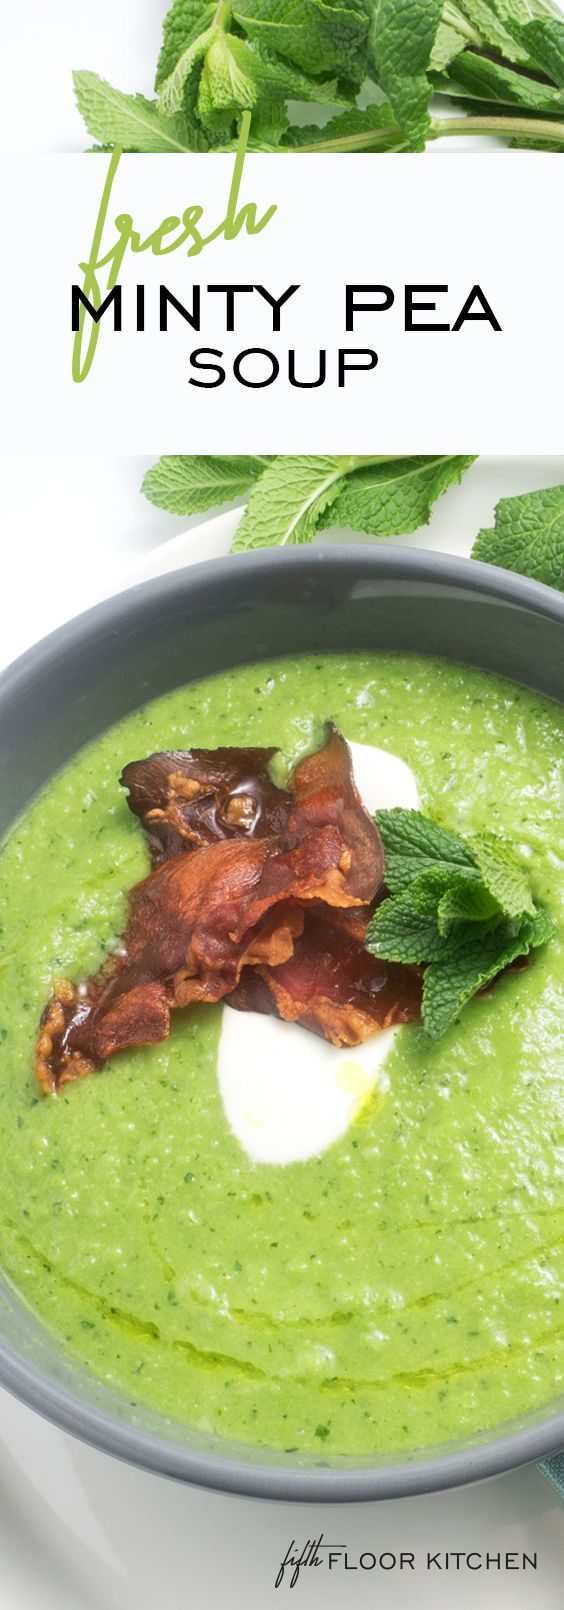 This spring pea & mint soup with crispy prosciutto is fresh and healthy. I love the minty taste and the vibrant green color! Delicious!